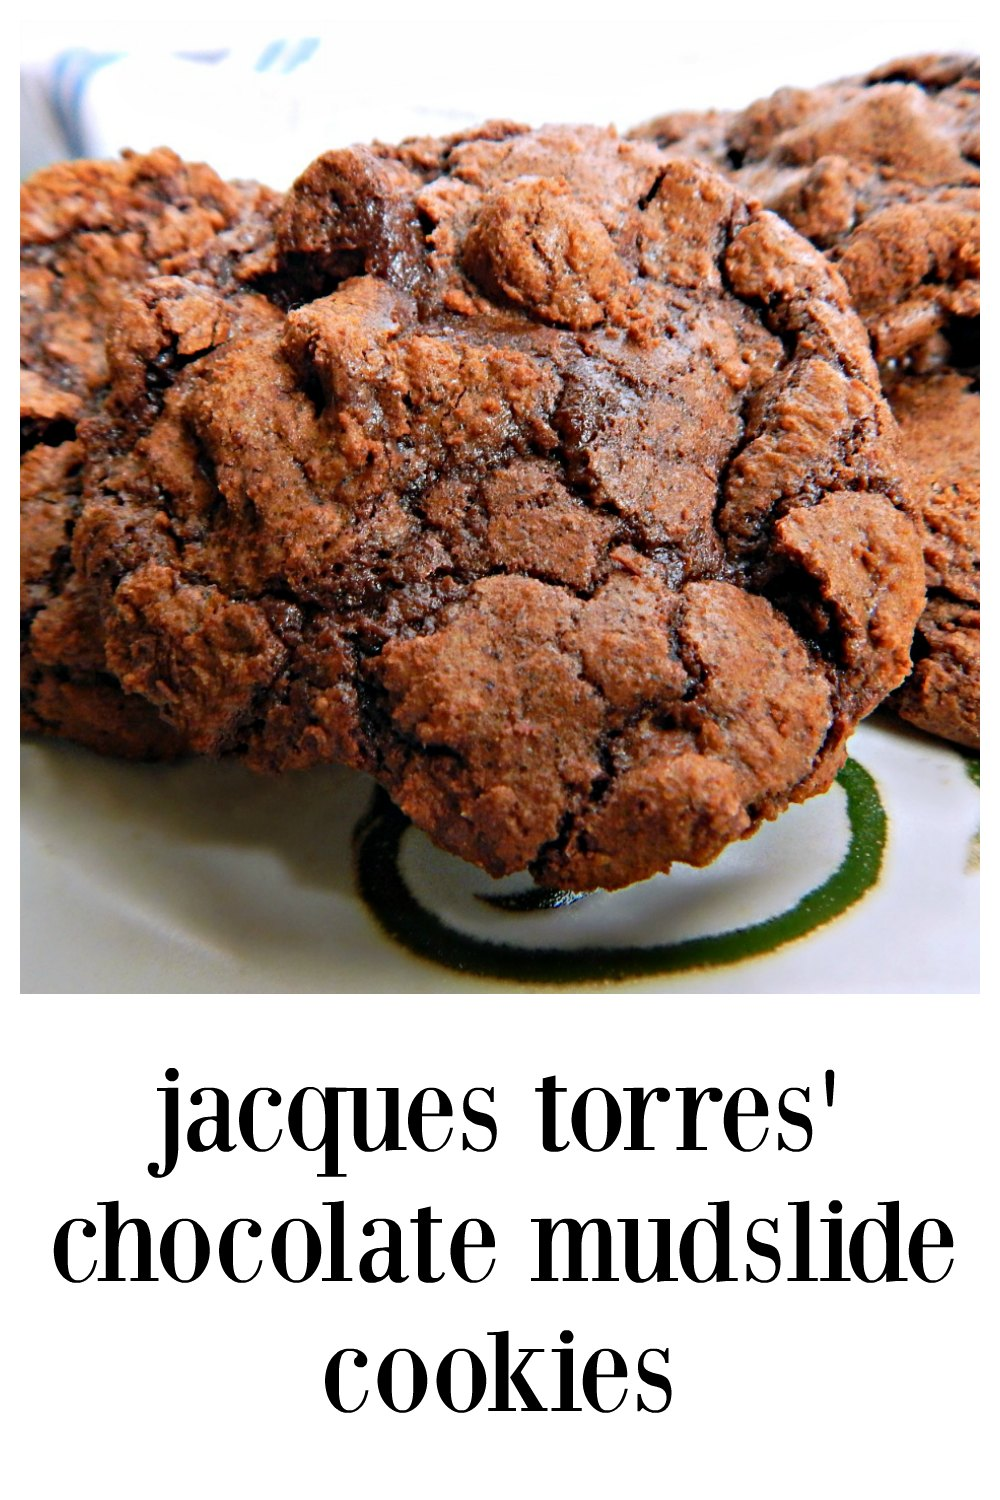 Jacques Torres' Chocolate Mudslide Cookies are a must make. They are chocolate on chocolate on chocolate. They'll ruin you for any other cookie! #JaquesTorres #JacquesTorresChocolateCookie #JacqusTorresChocolateMudslideCookie #ChocolateChocolateChip